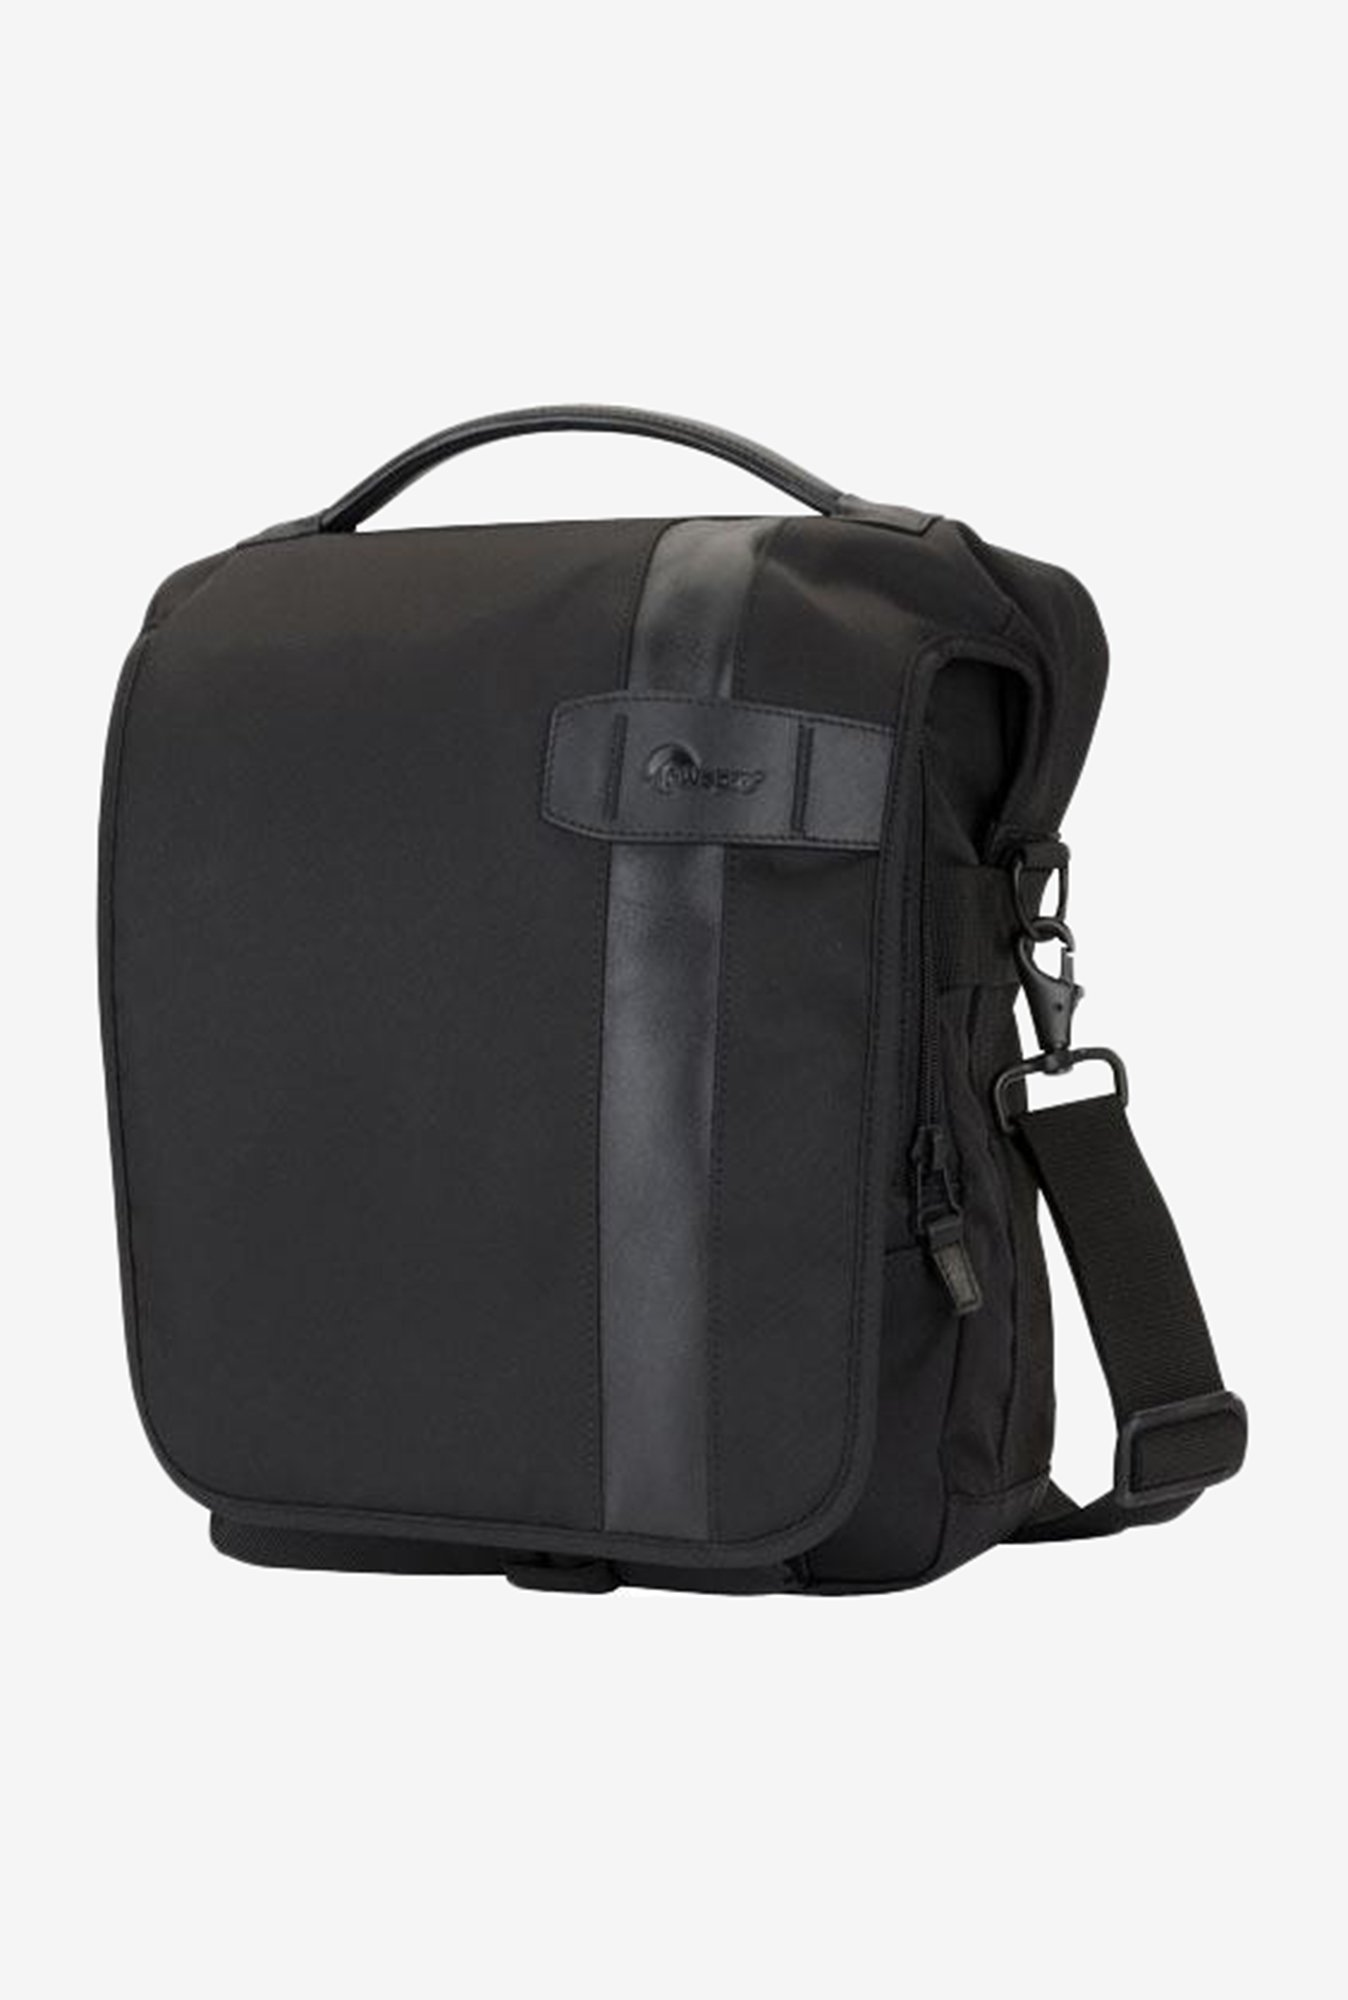 Lowepro Classified 160AW Shoulder Bag Black